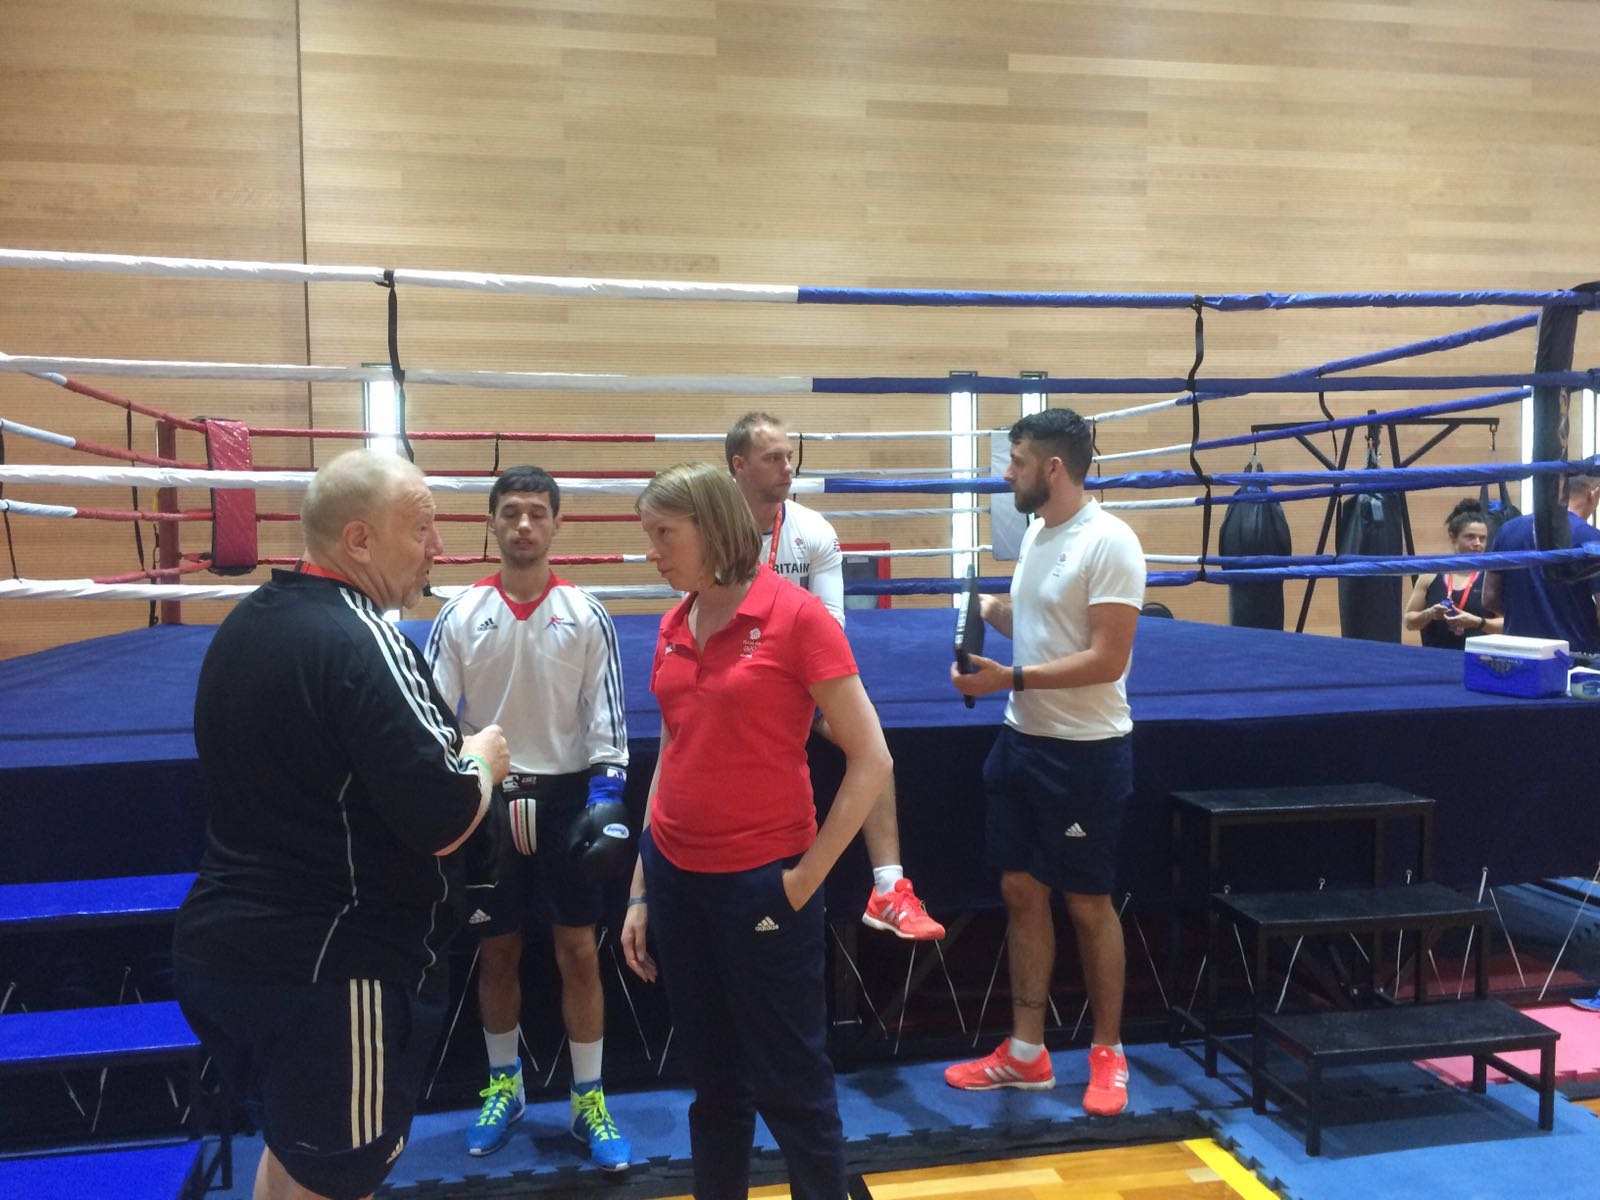 Sports Minister Tracey Crouch meets Team GB boxers